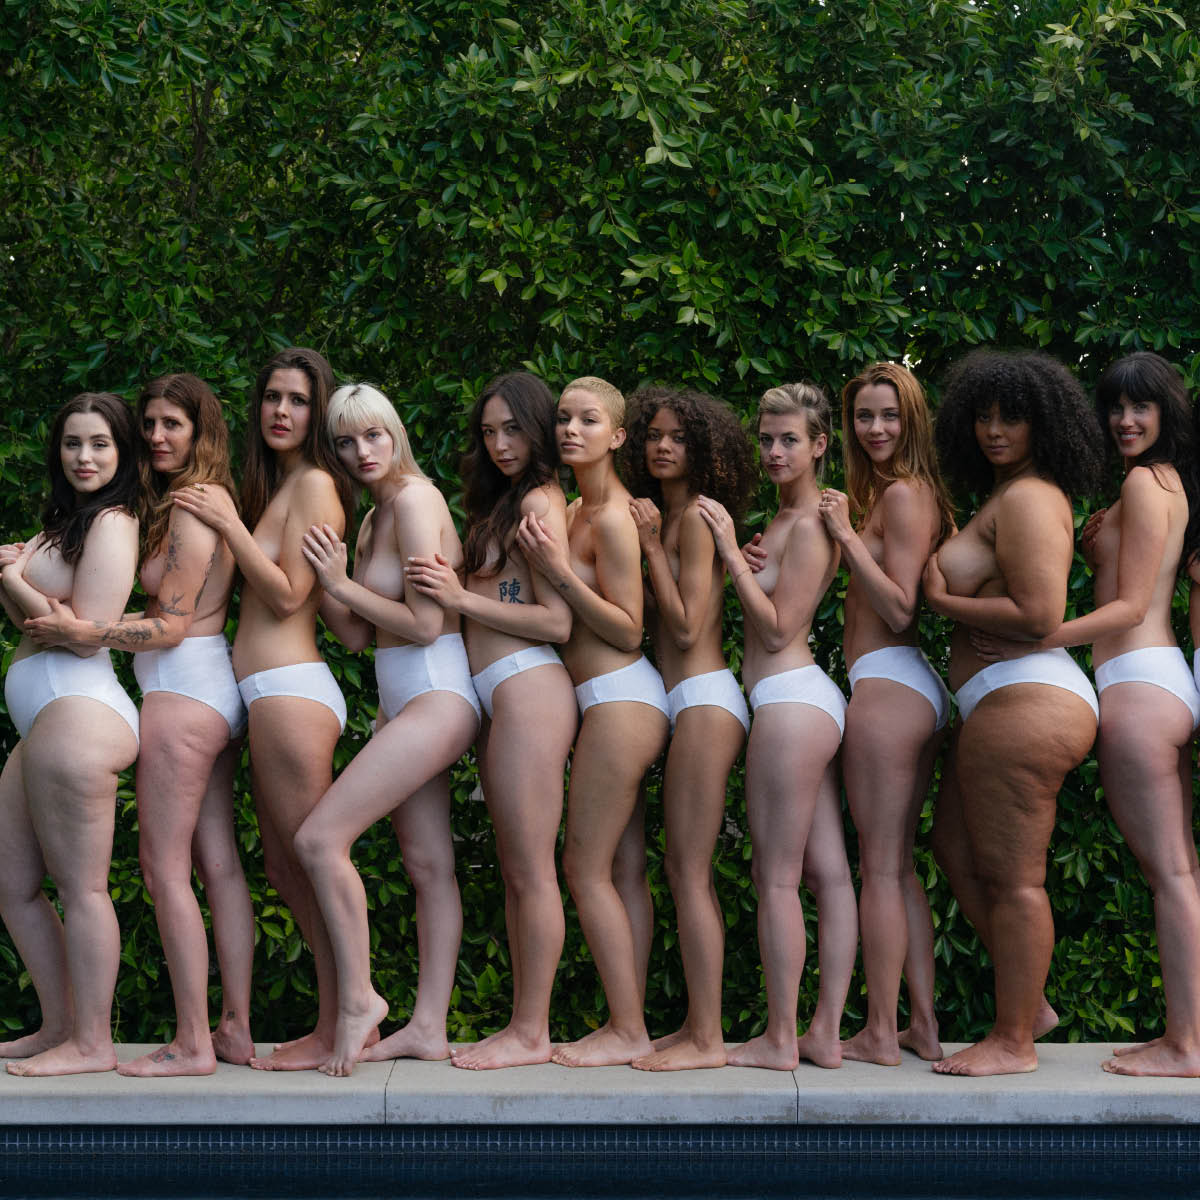 eleven women of different body types and ethnicities all wearing white organic cotton underwear, some wearing high-waist style underwear, some wearing organic cotton bikini underwear and some wearing organic cotton thong underwear outside.